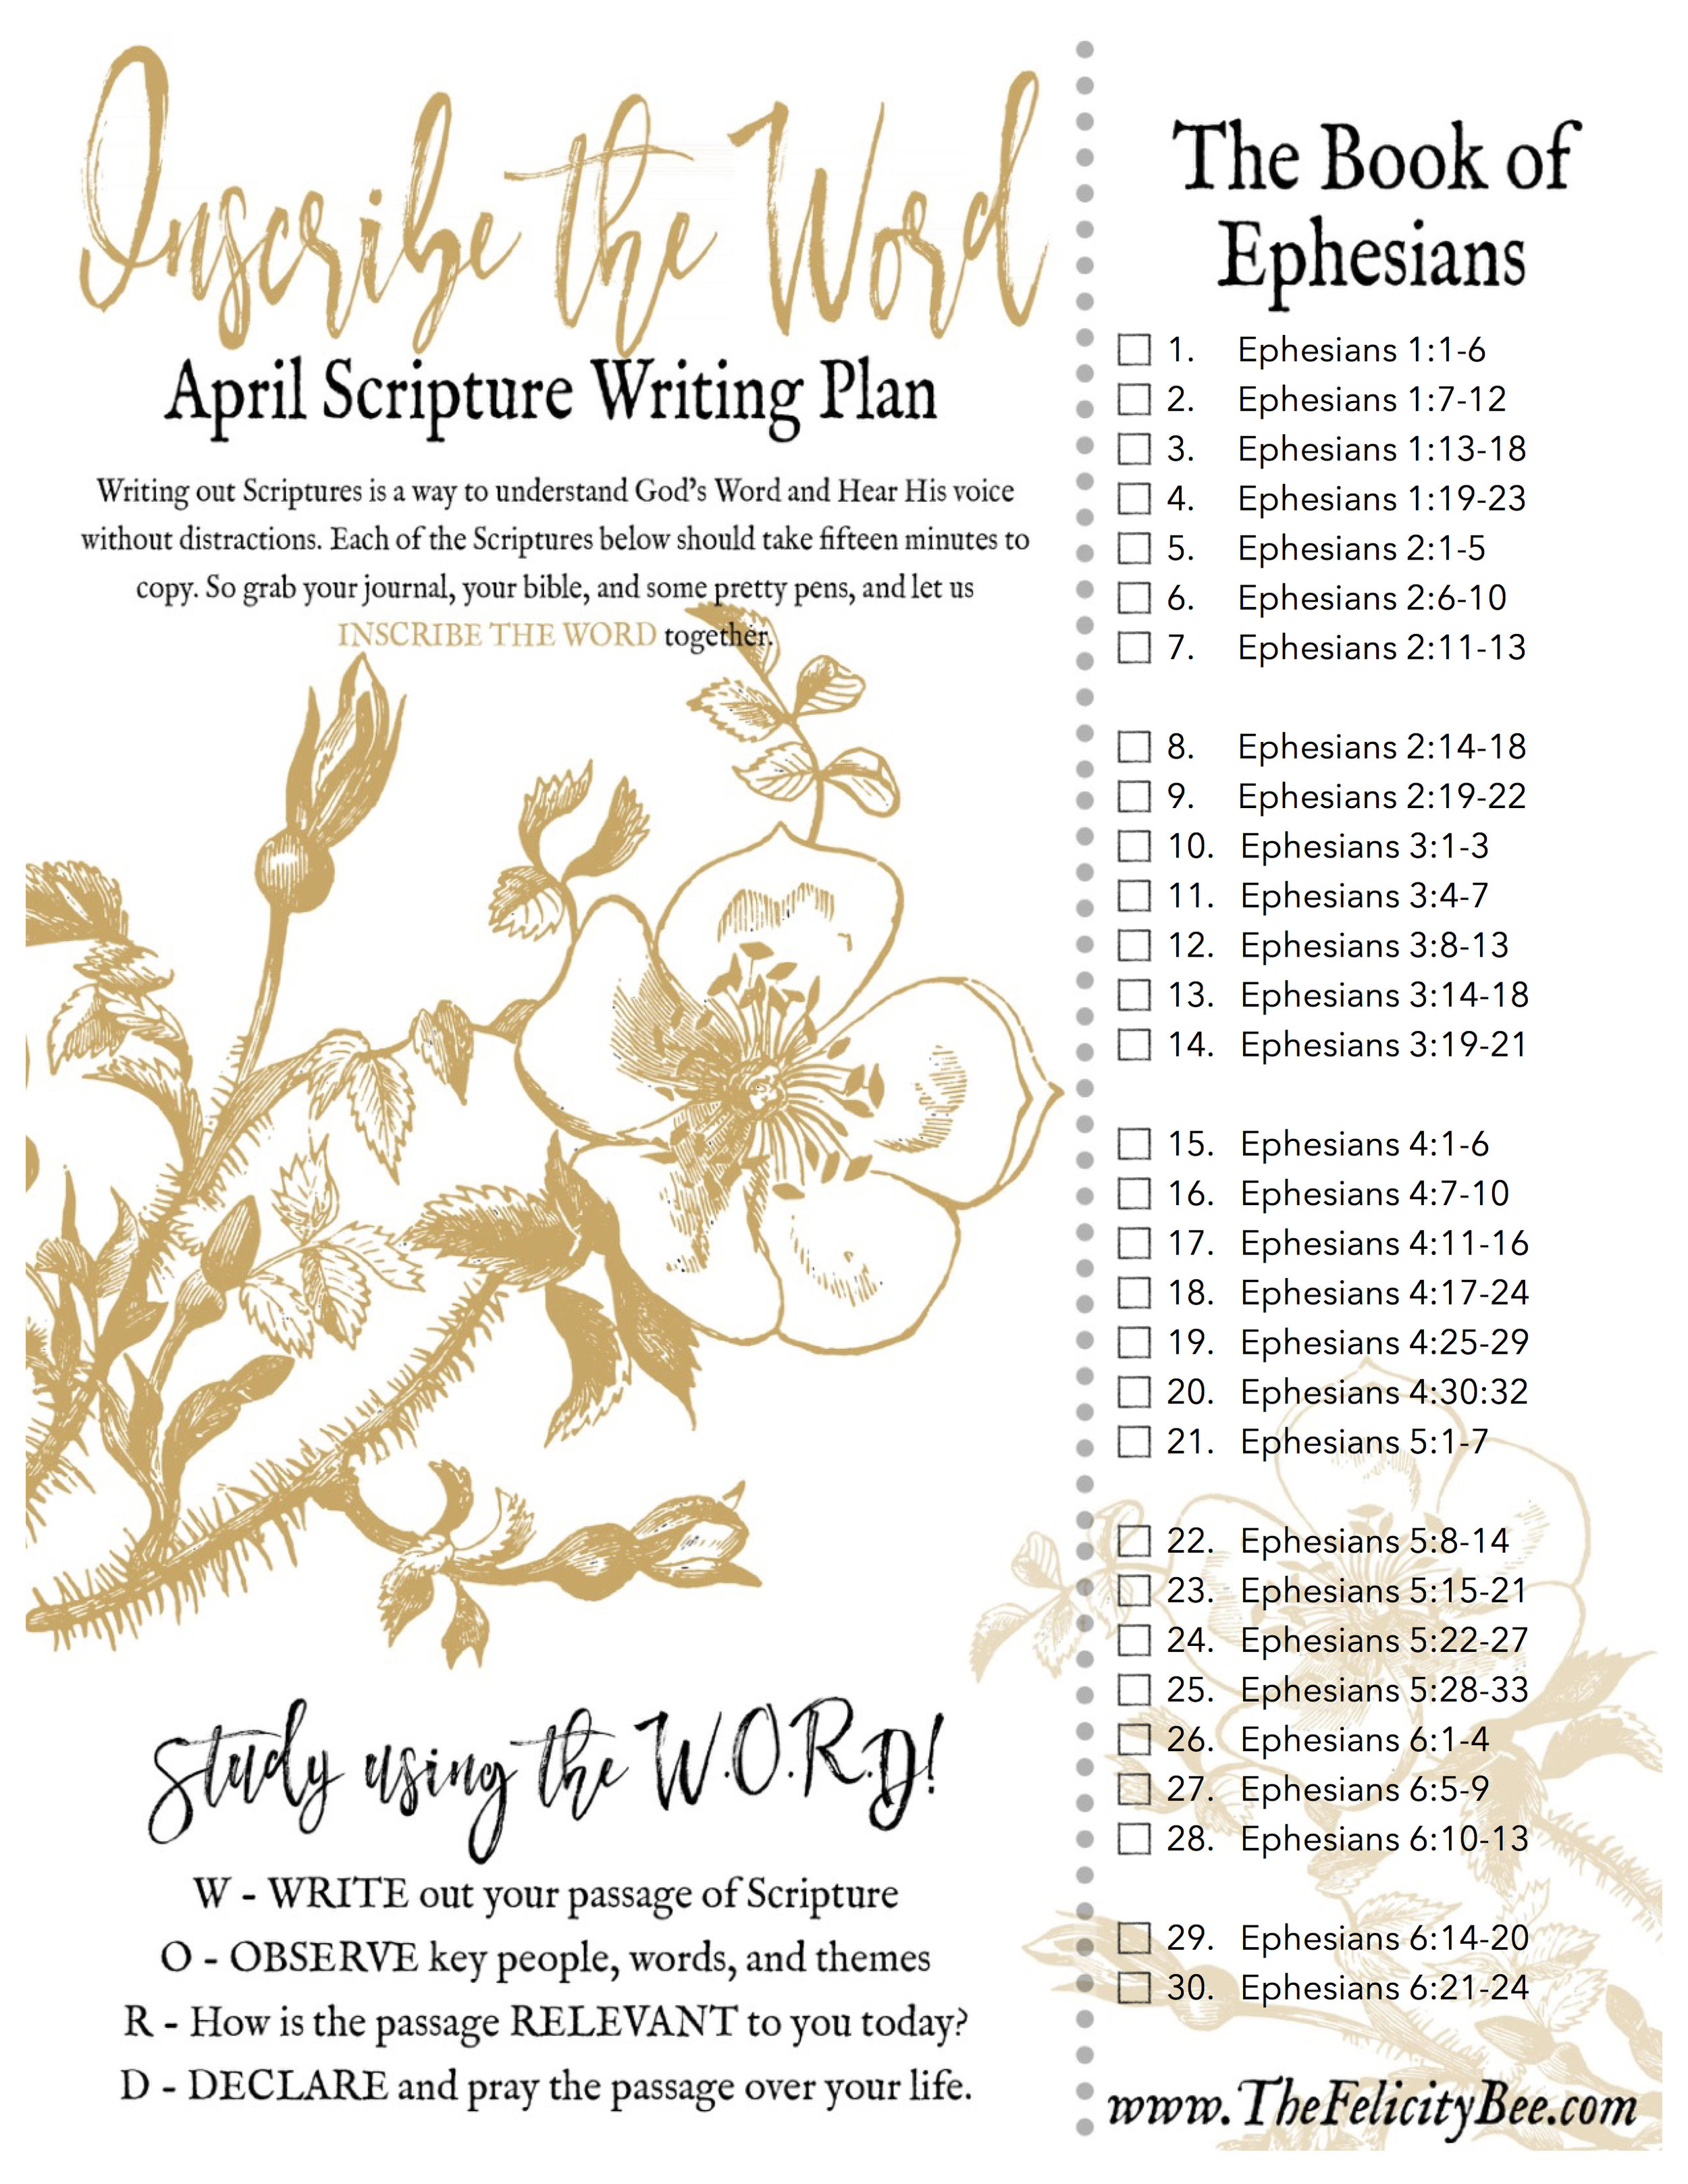 The book of Ephesians is a powerful book that reminds us of the unity we have as brothers and sisters and Christ. Join us for our April Scripture Writing Plan as we Inscribe THE BOOK OF EPHESIANS.